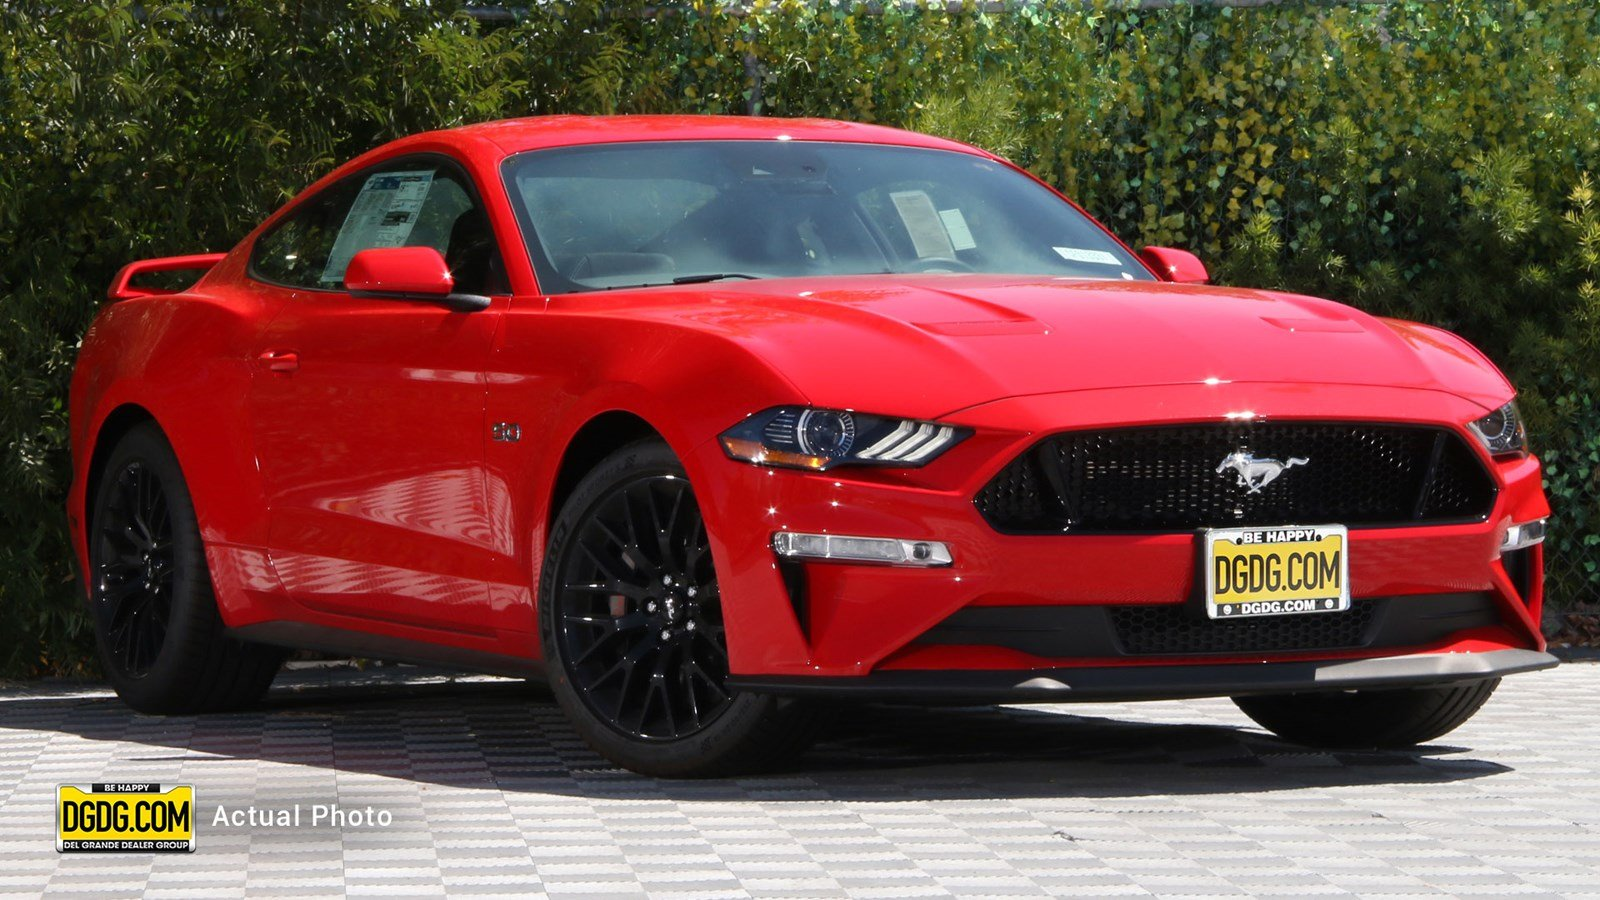 Ford Mustang Gt >> 2019 Ford Mustang Gt Rwd 2d Coupe